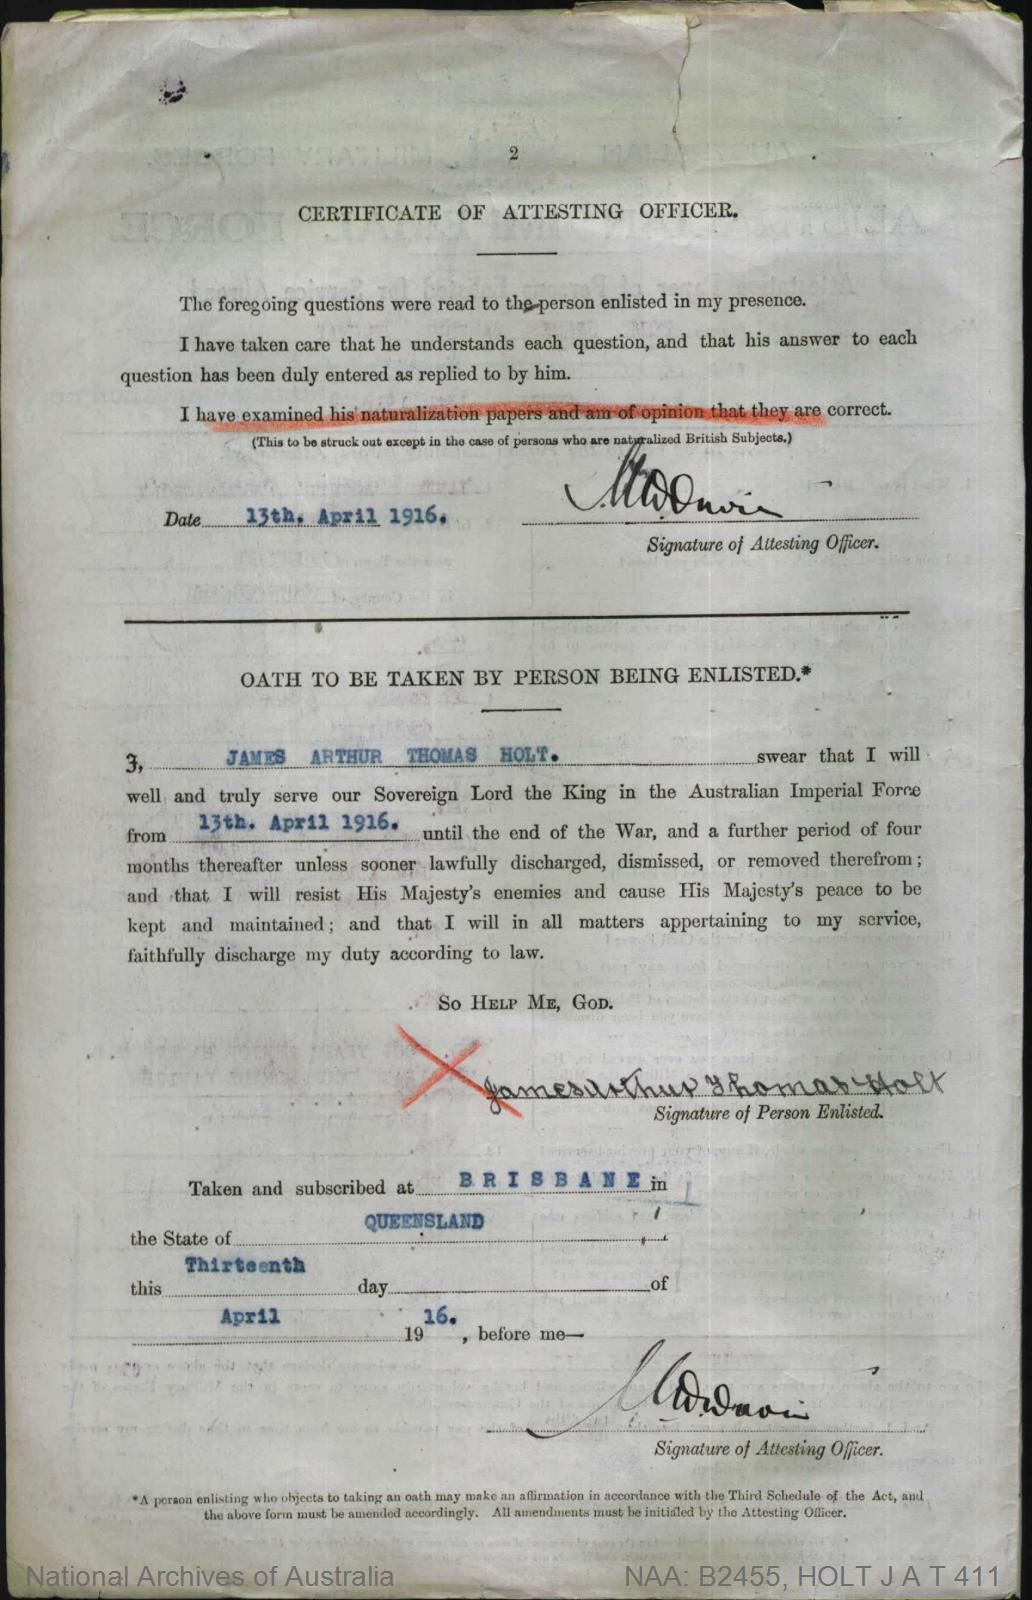 HOLT James Arthur Thomas : Service Number - 411 : Place of Birth - Brisbane Qld : Place of Enlistment - Brisbane Qld : Next of Kin - (Mother) HOLT Mary